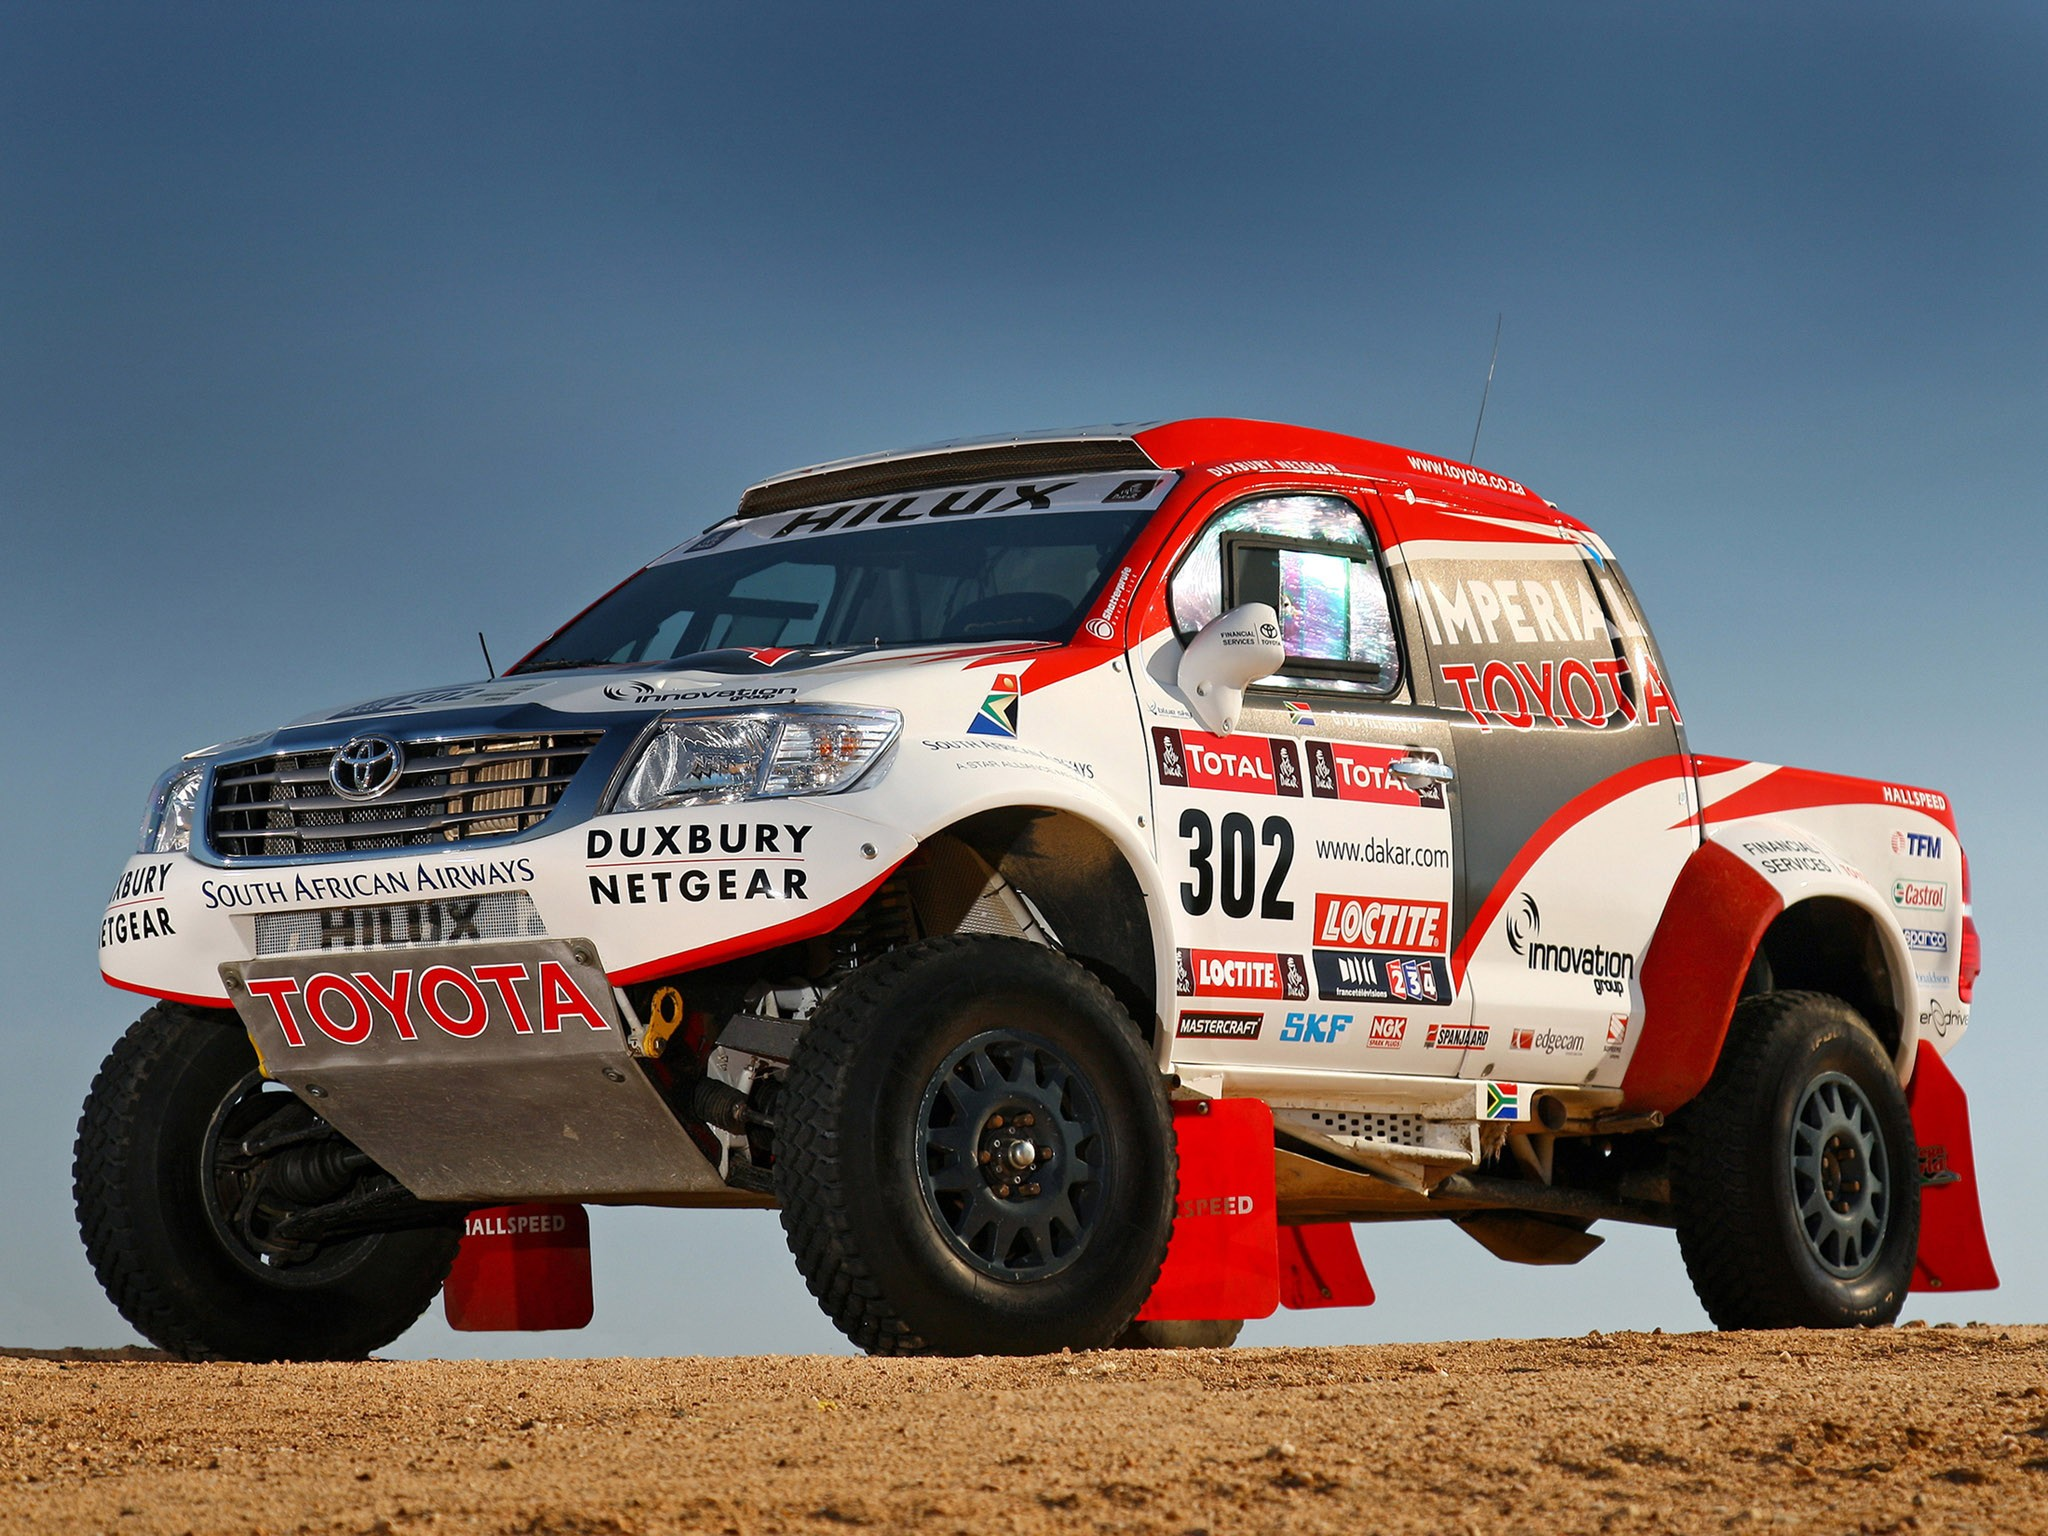 2012 Toyota Hilux Rally Car